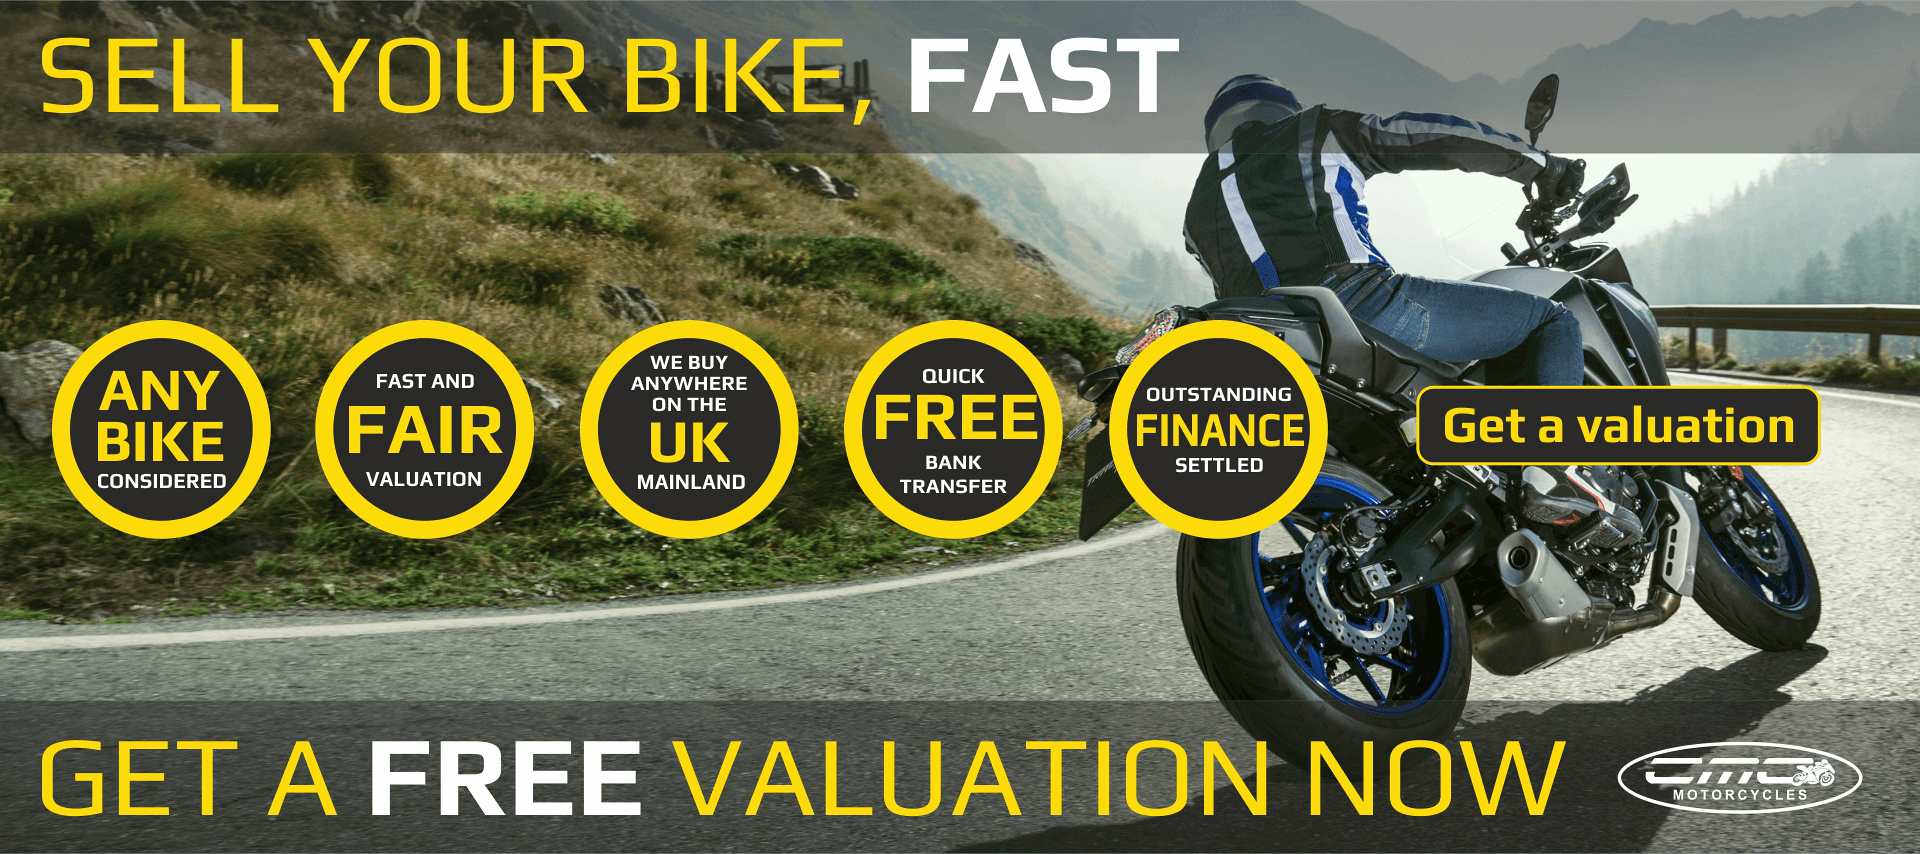 Sell your bike, fast!